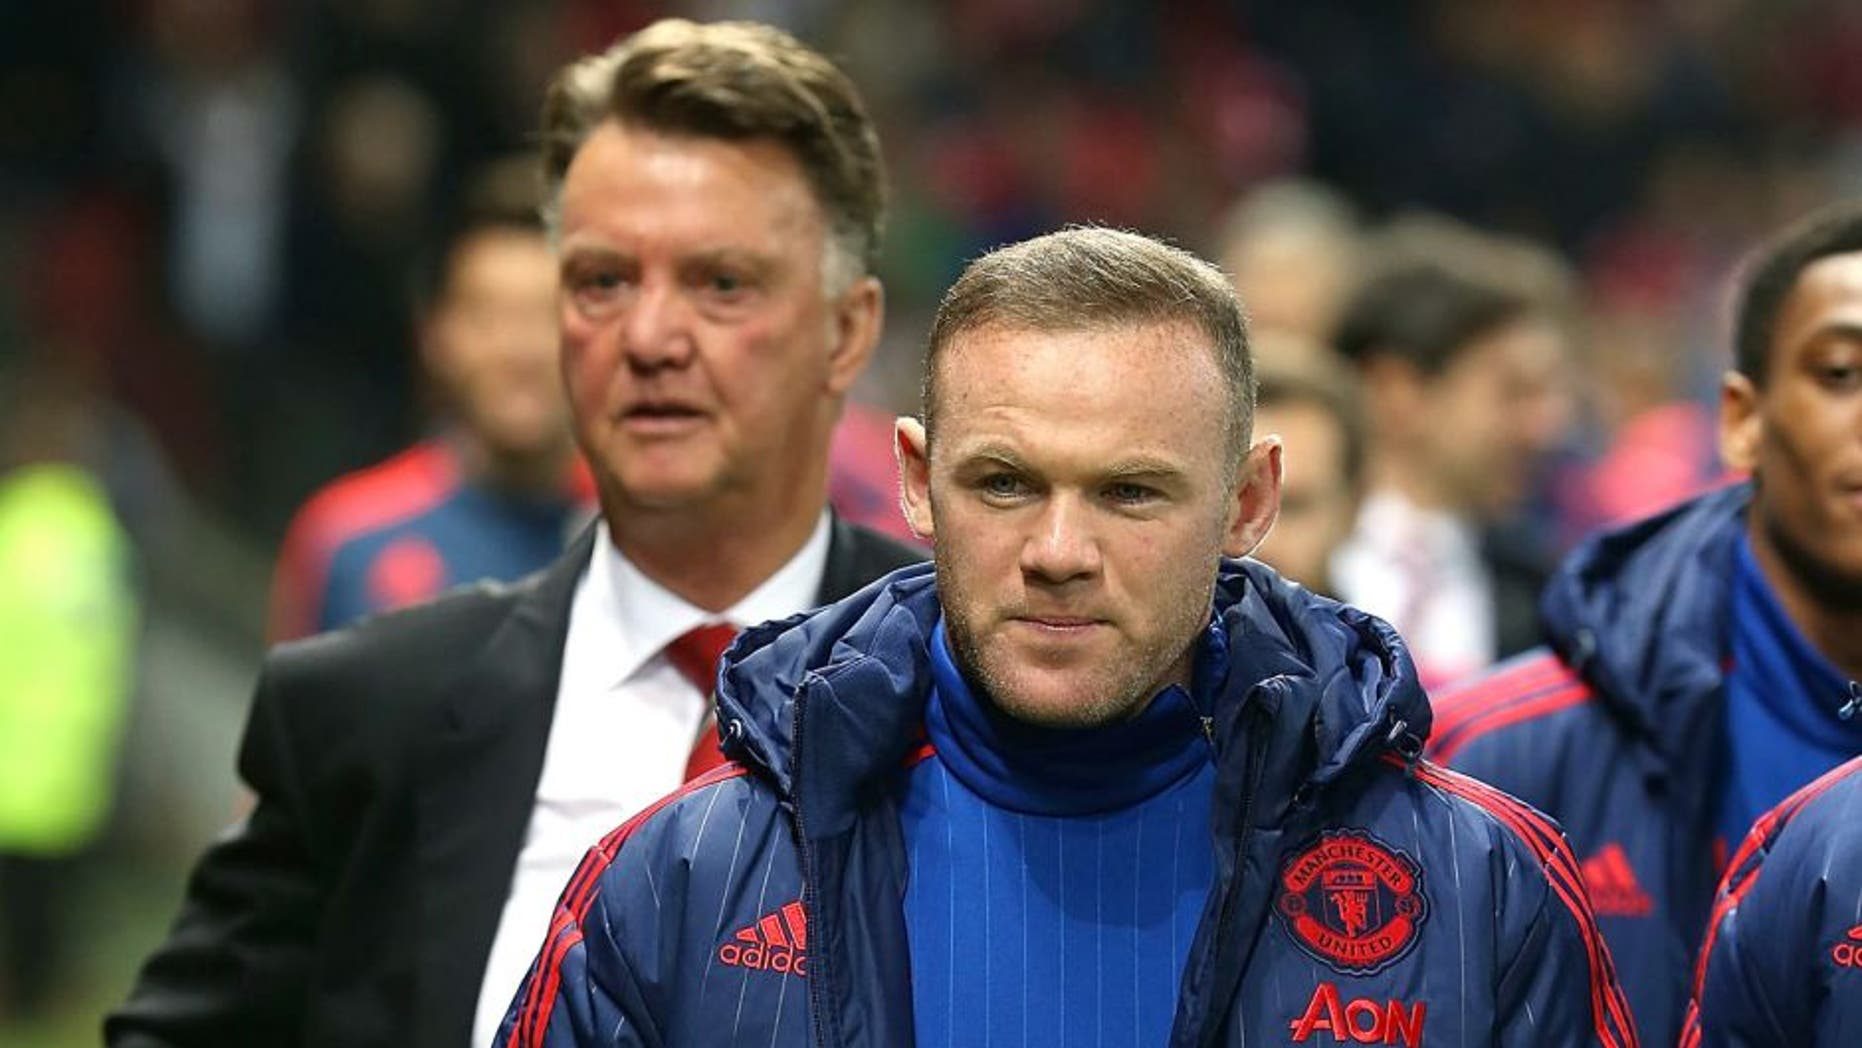 MANCHESTER, ENGLAND - OCTOBER 28: Manager Louis van Gaal and Wayne Rooney of Manchester United walk to the bench ahead of the Capital One Fourth Round match between Manchester United and Middlesbrough at Old Trafford on October 28, 2015 in Manchester, England. (Photo by Matthew Peters/Man Utd via Getty Images)